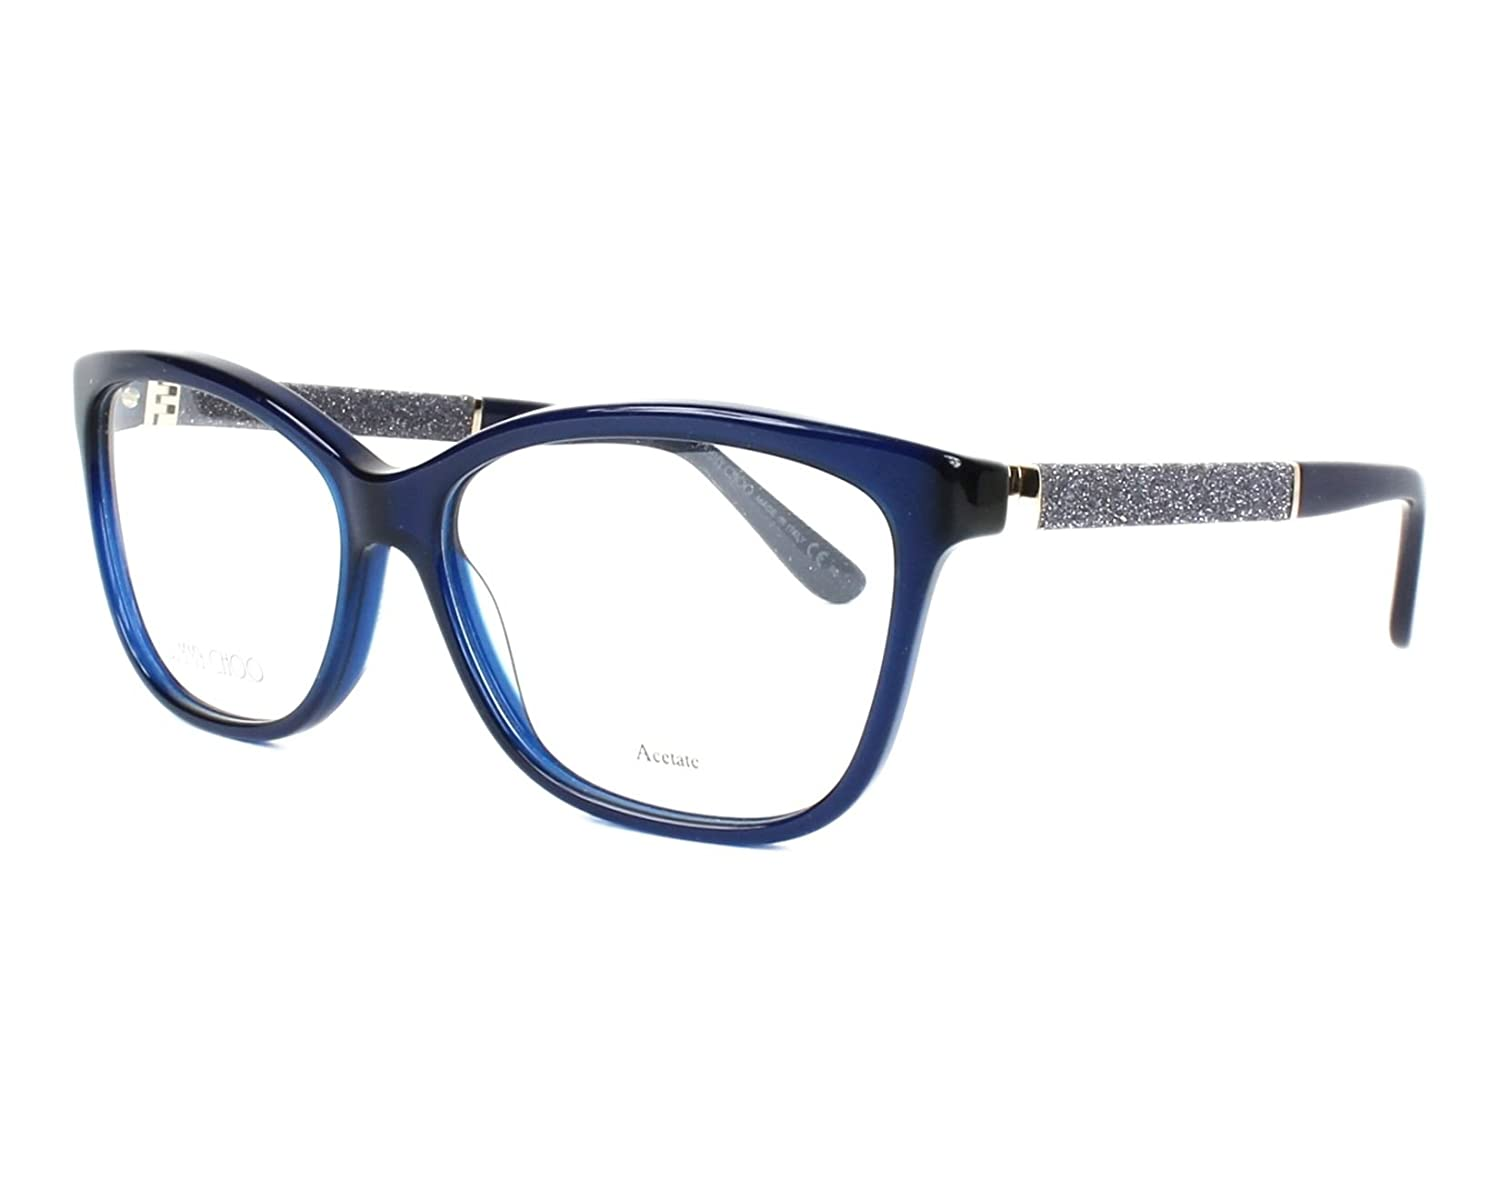 b821dcf25b61 Amazon.com  Jimmy Choo Plastic Rectangular Eyeglasses 55 0FA7 Blue Opal   Shoes